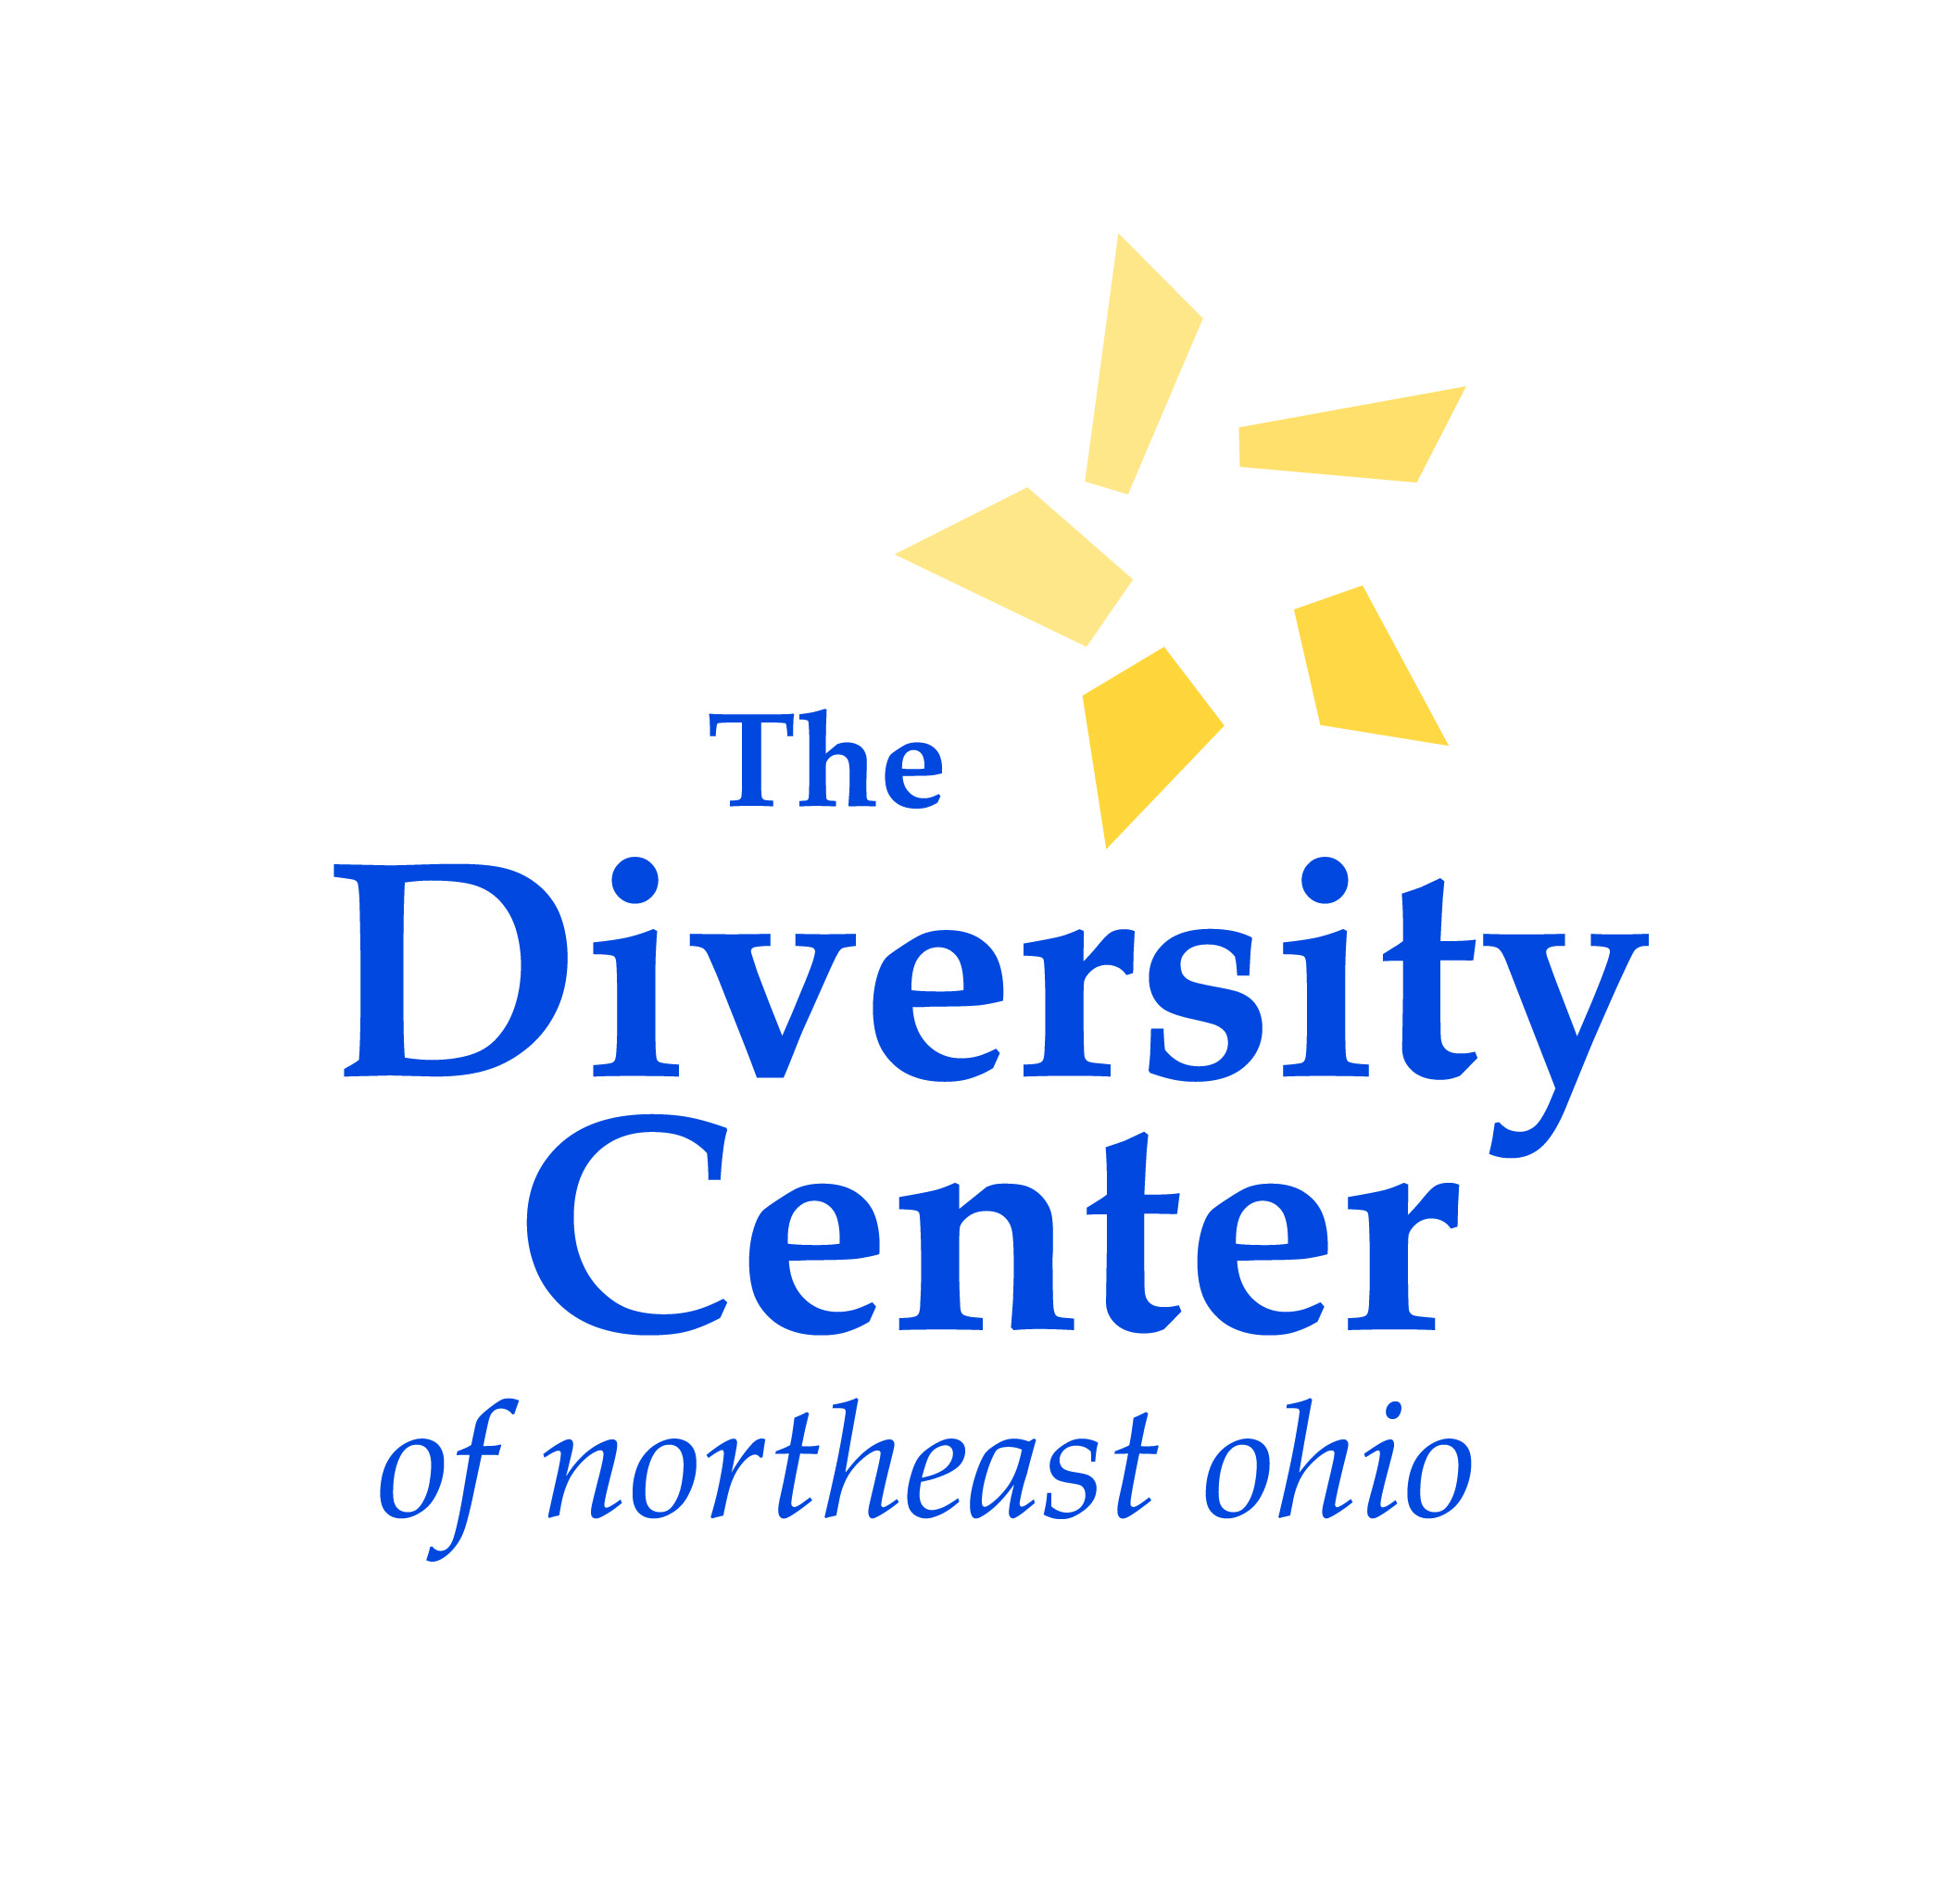 DIVERSITY CENTER OF NORTHEAST OHIO INC